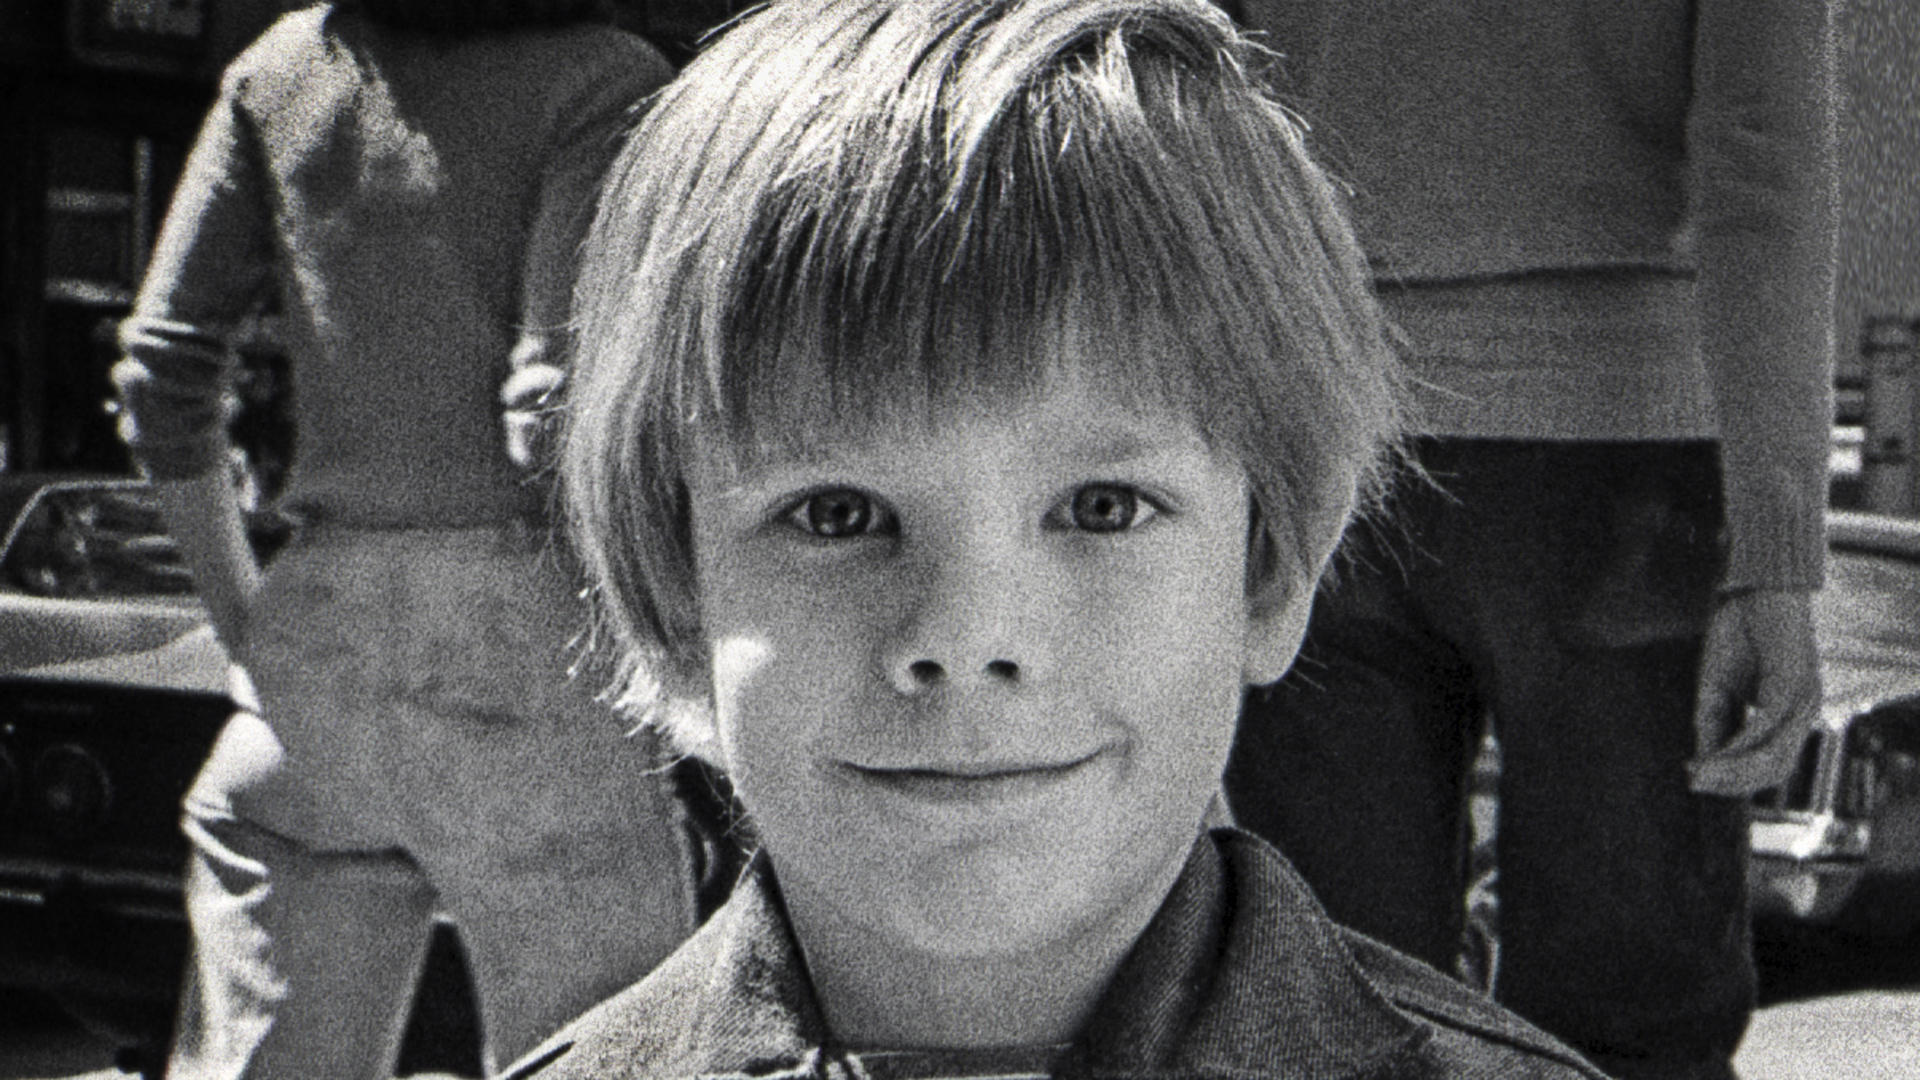 pictures Arrest Made in the Etan Patz Missing Child Case 33 Years Later